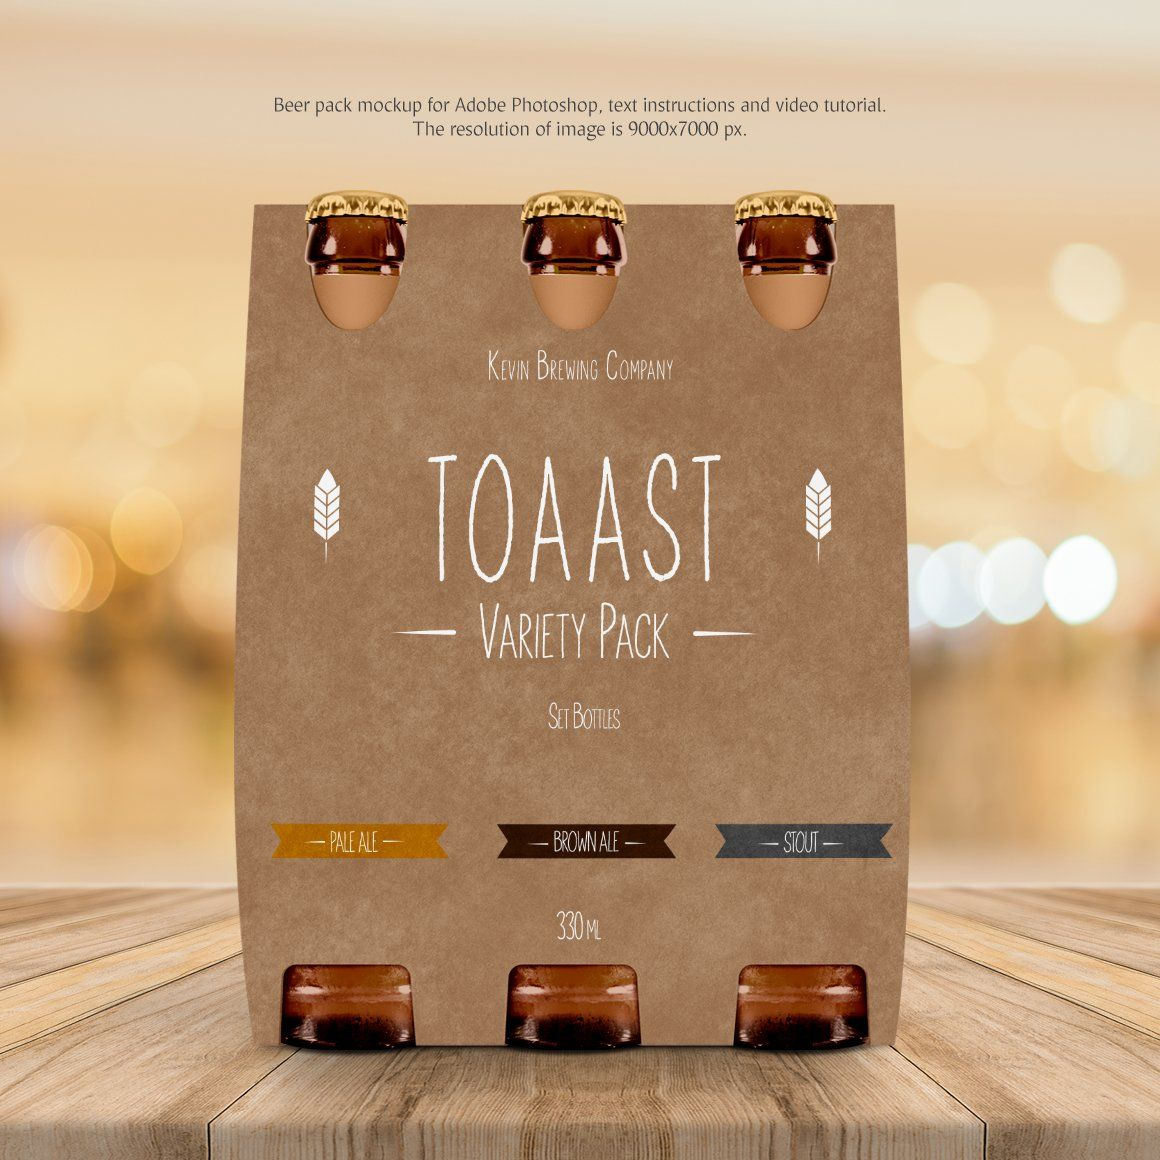 Download Beer Pack Mockup | Beer pack, Beer box, Beer